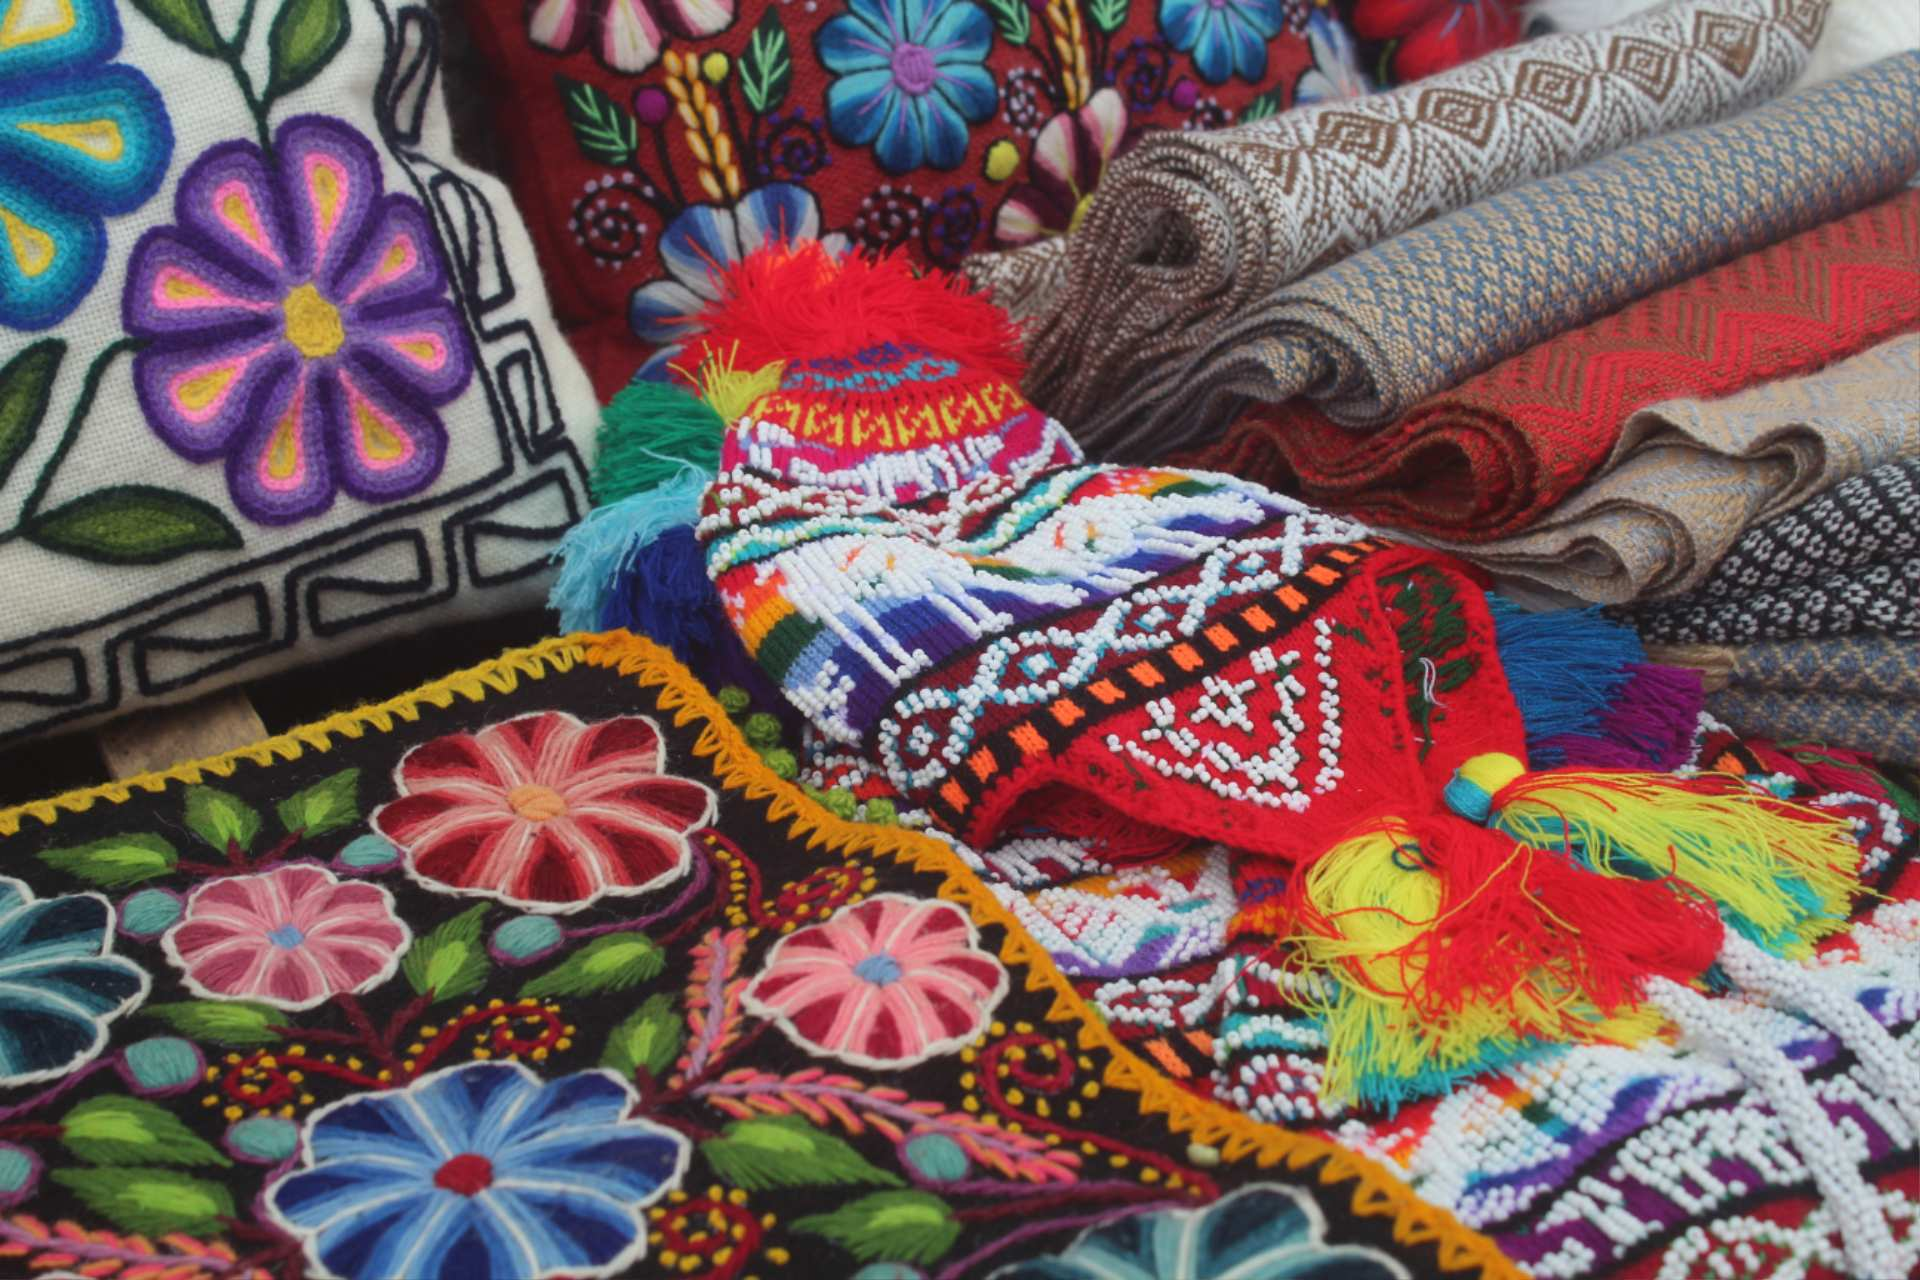 Handcrafted woven textiles of Andean Peru http://infromtheoutpost.com